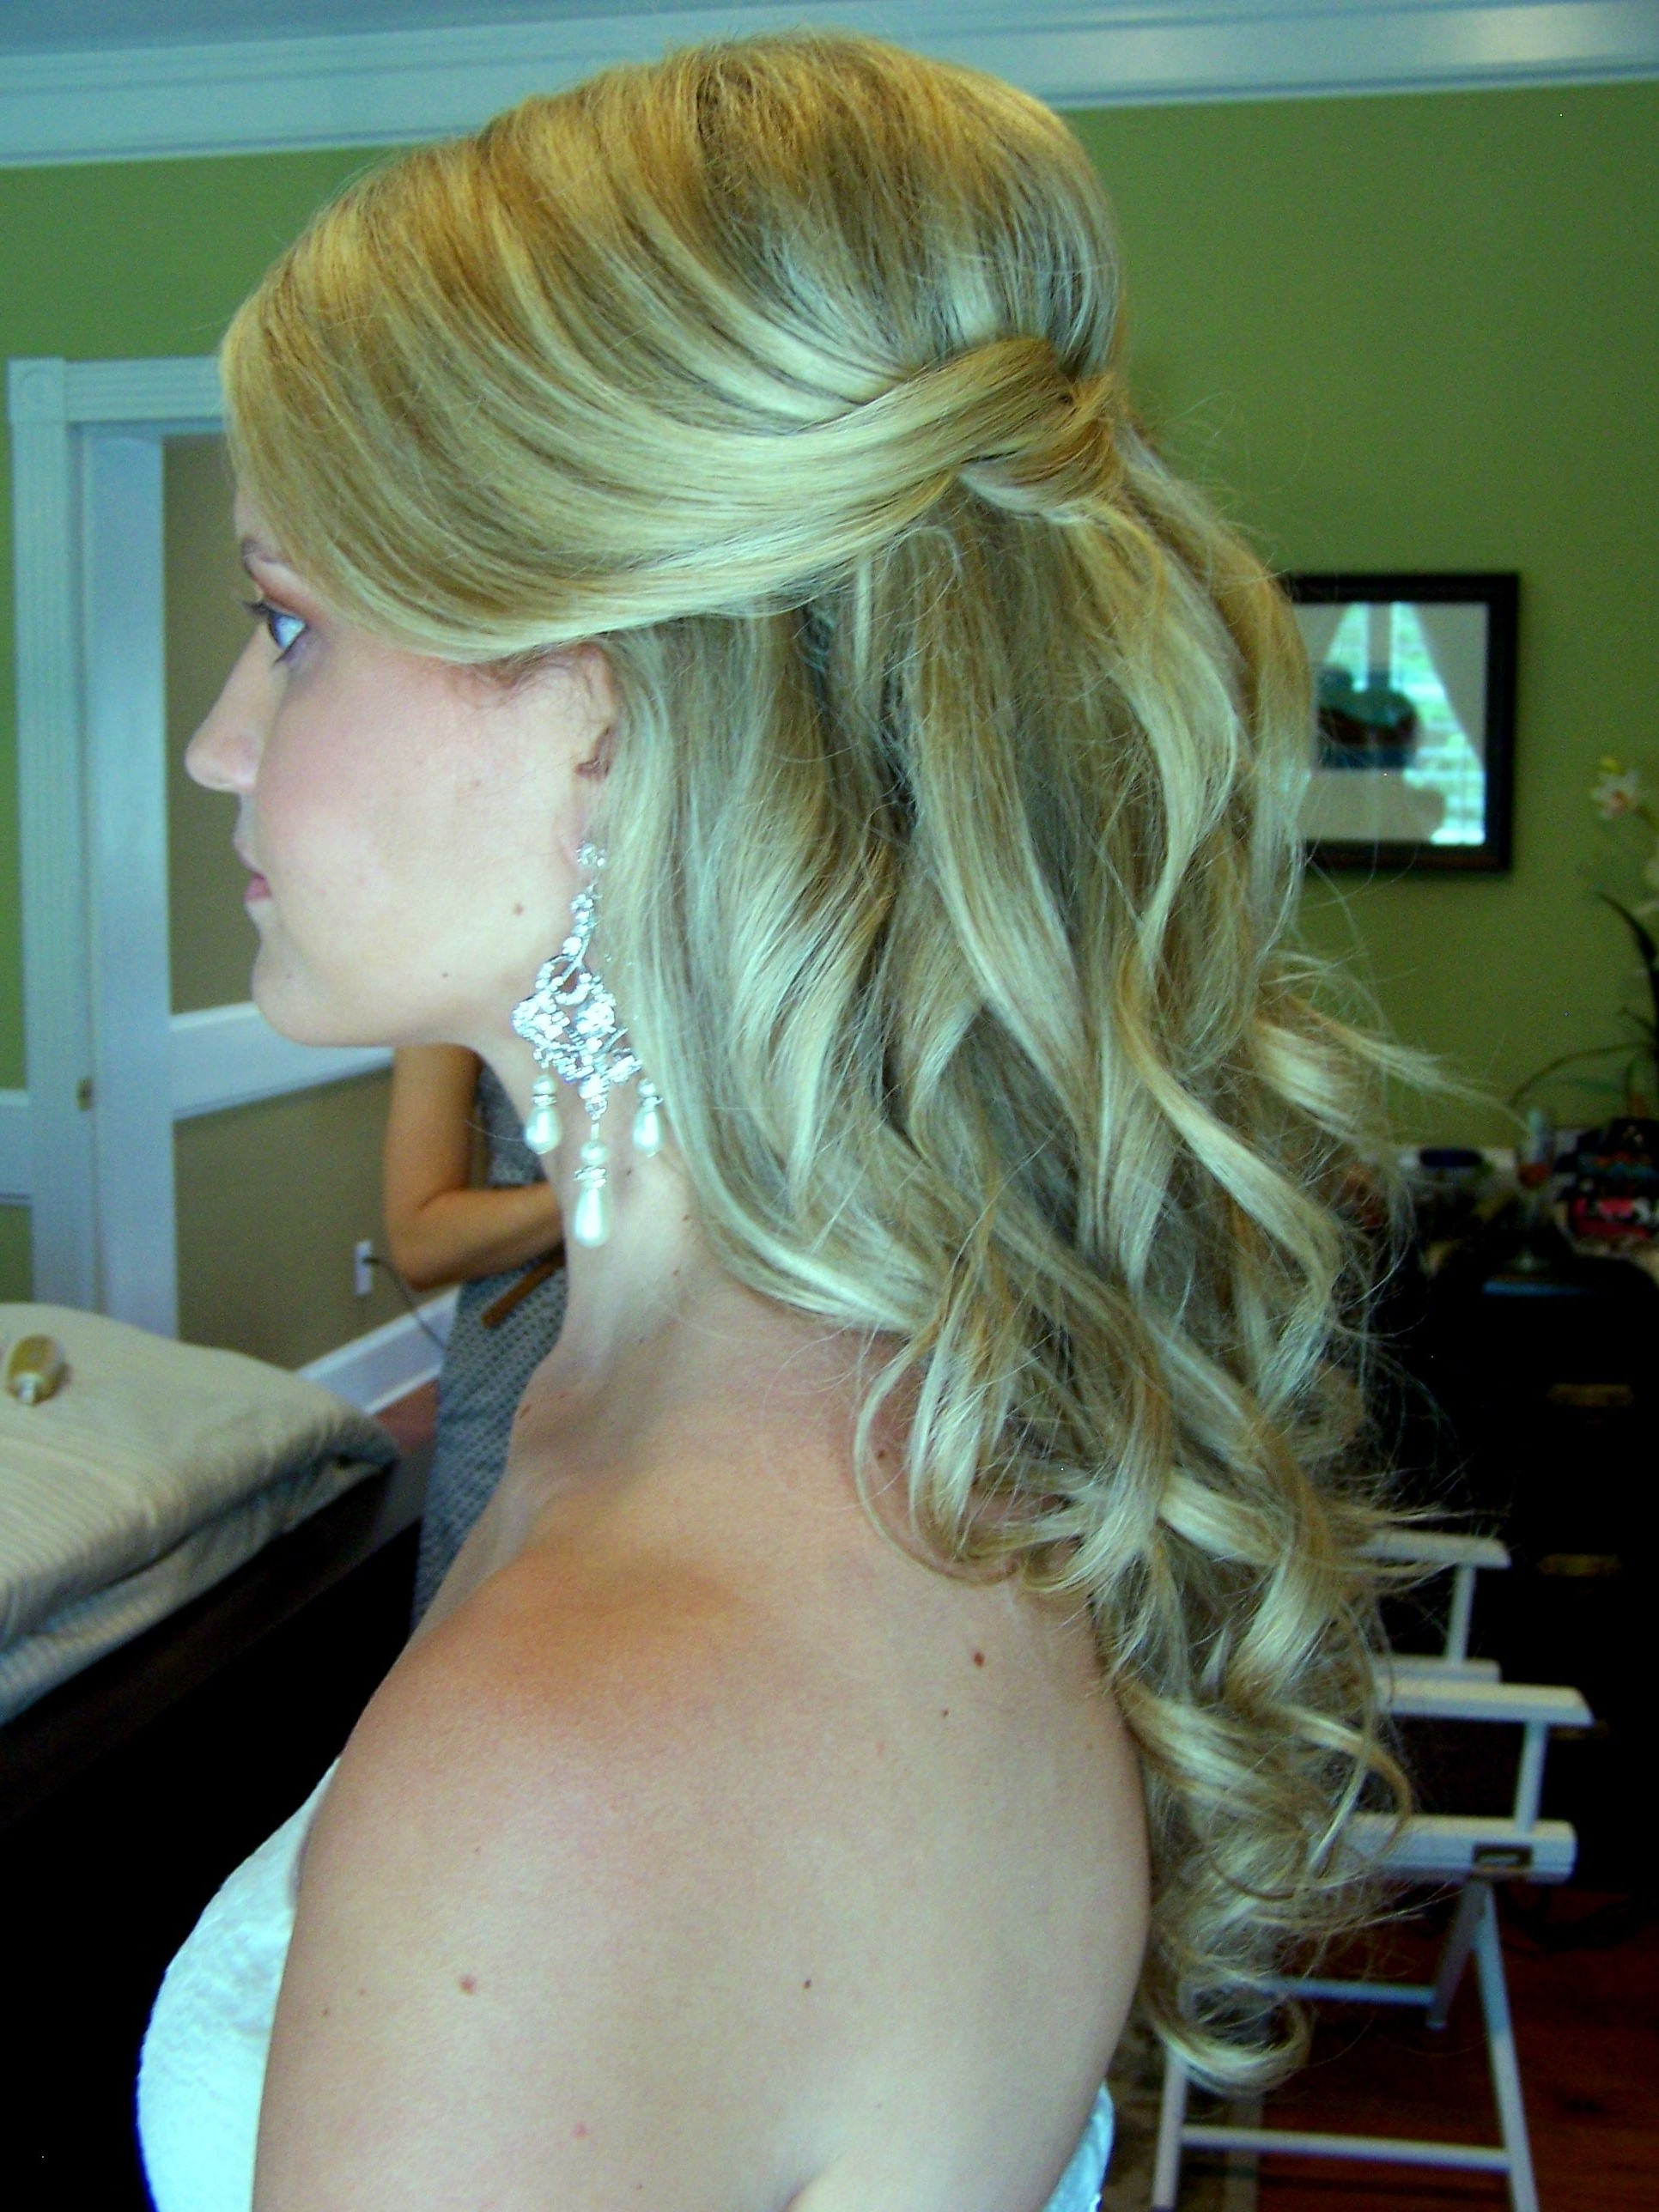 Ash And With Regard To Most Recent Half Updo Blonde Hairstyles With Bouffant For Thick Hair (Gallery 11 of 20)